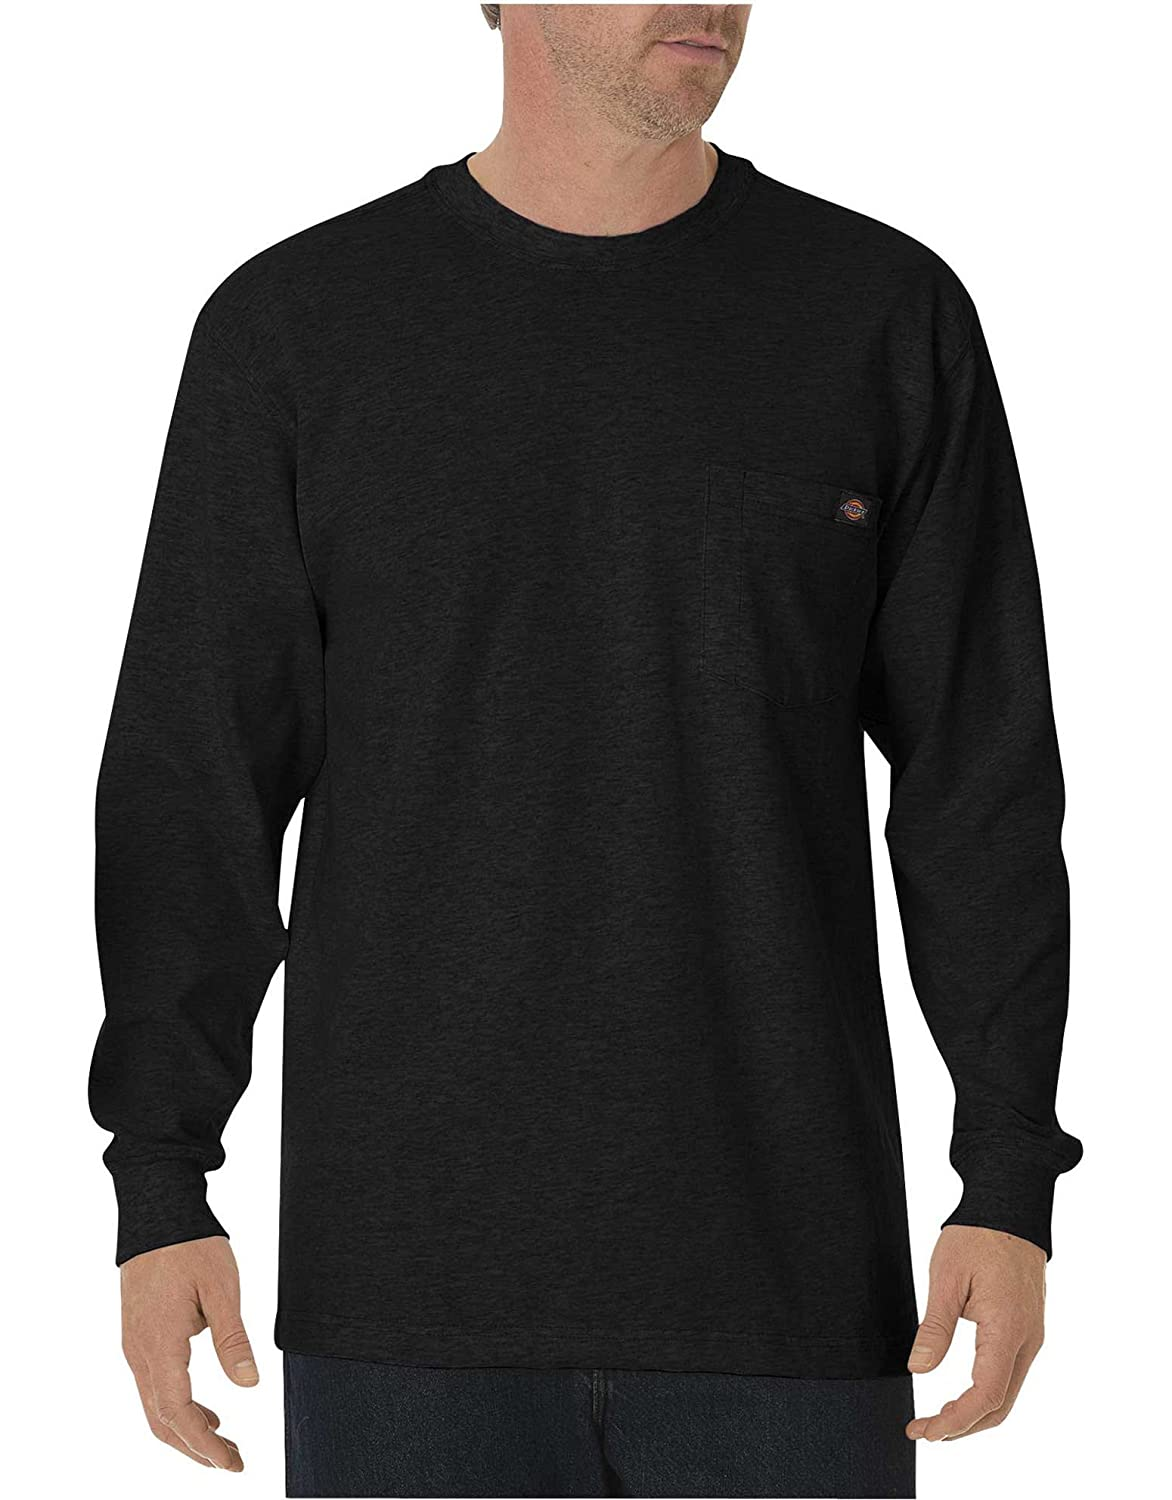 Noir  L Dickies Pocket Tee L S T-Shirt Manches Longues Homme